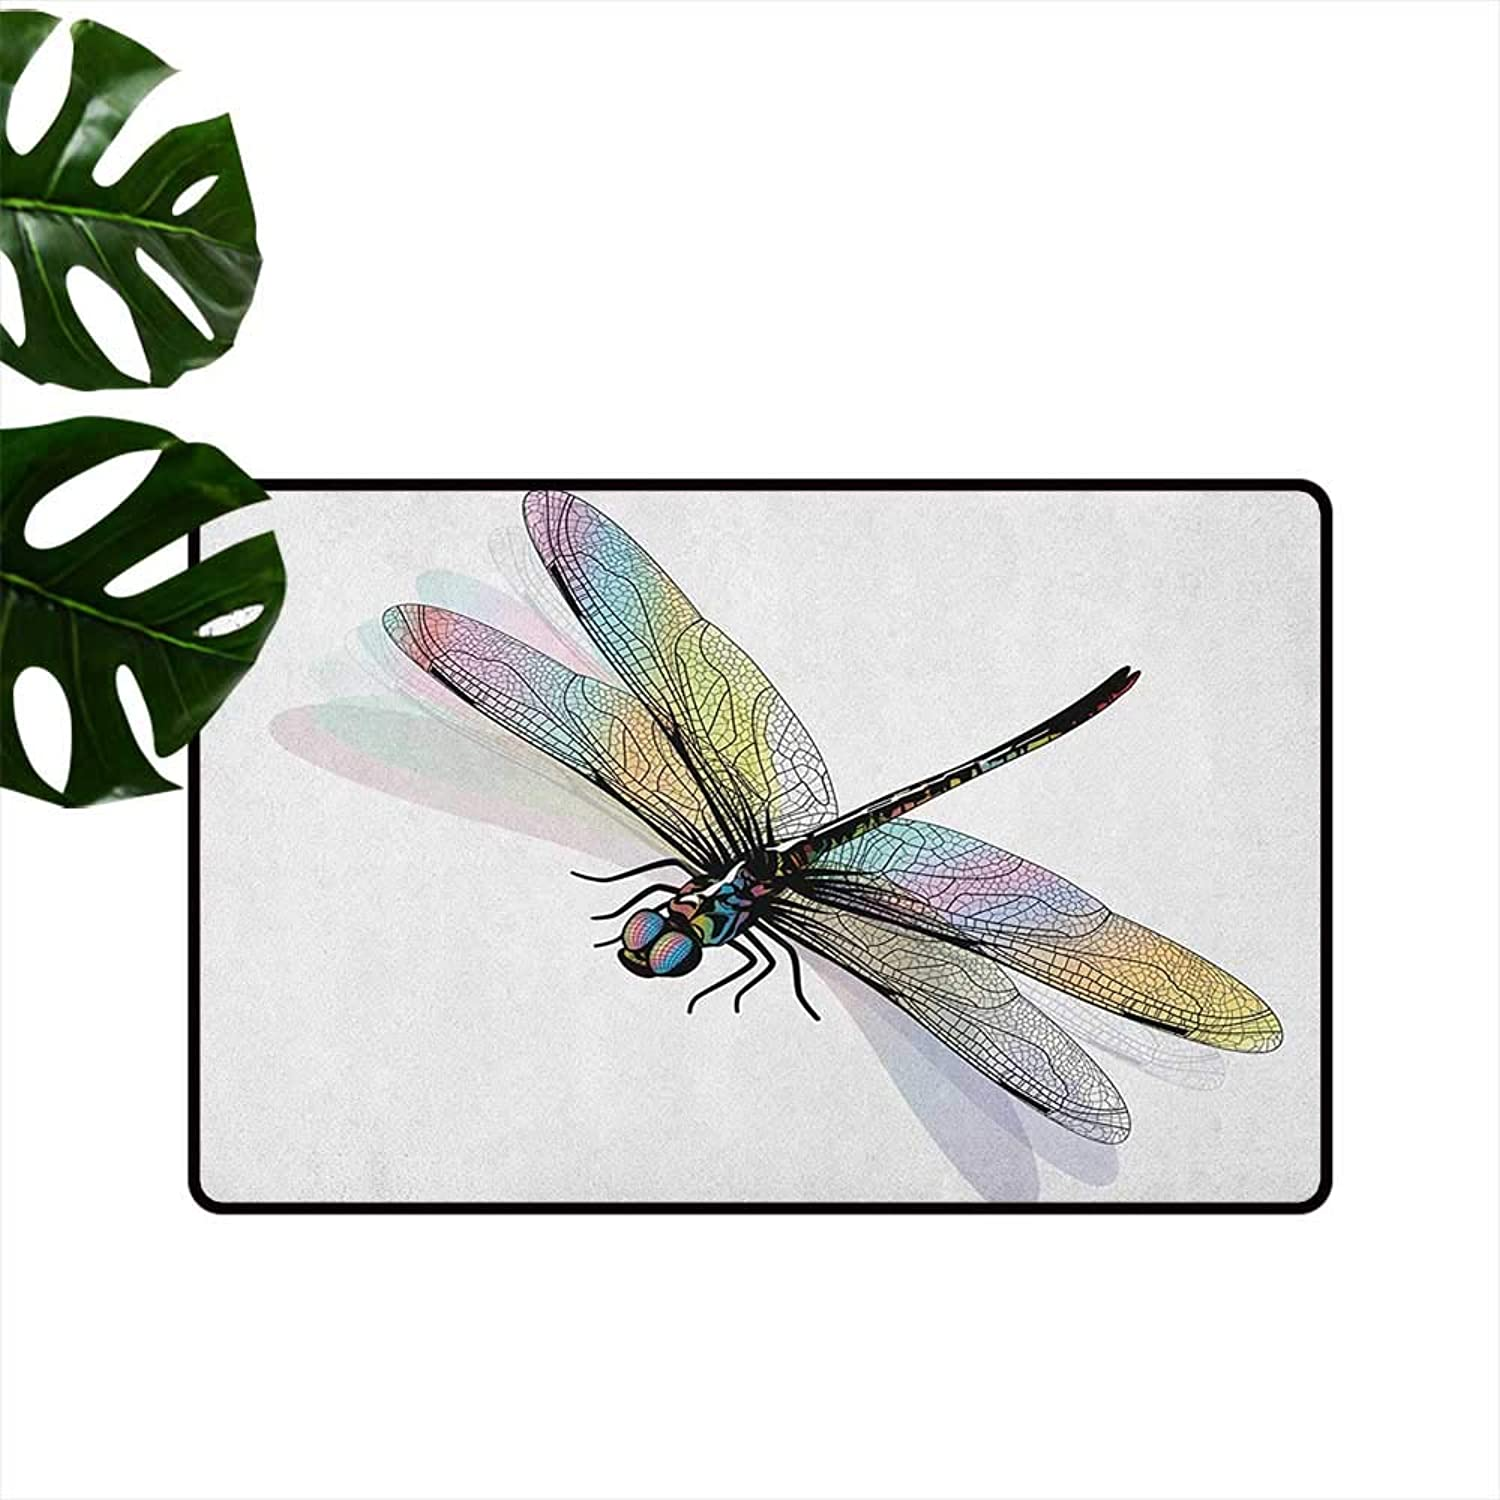 Dragonfly Waterproof Door mat Shady Dragonfly Pattern with Ornate Lace Style Spiritual Beauty Wings Design Personality W35 x L59 Multicolor